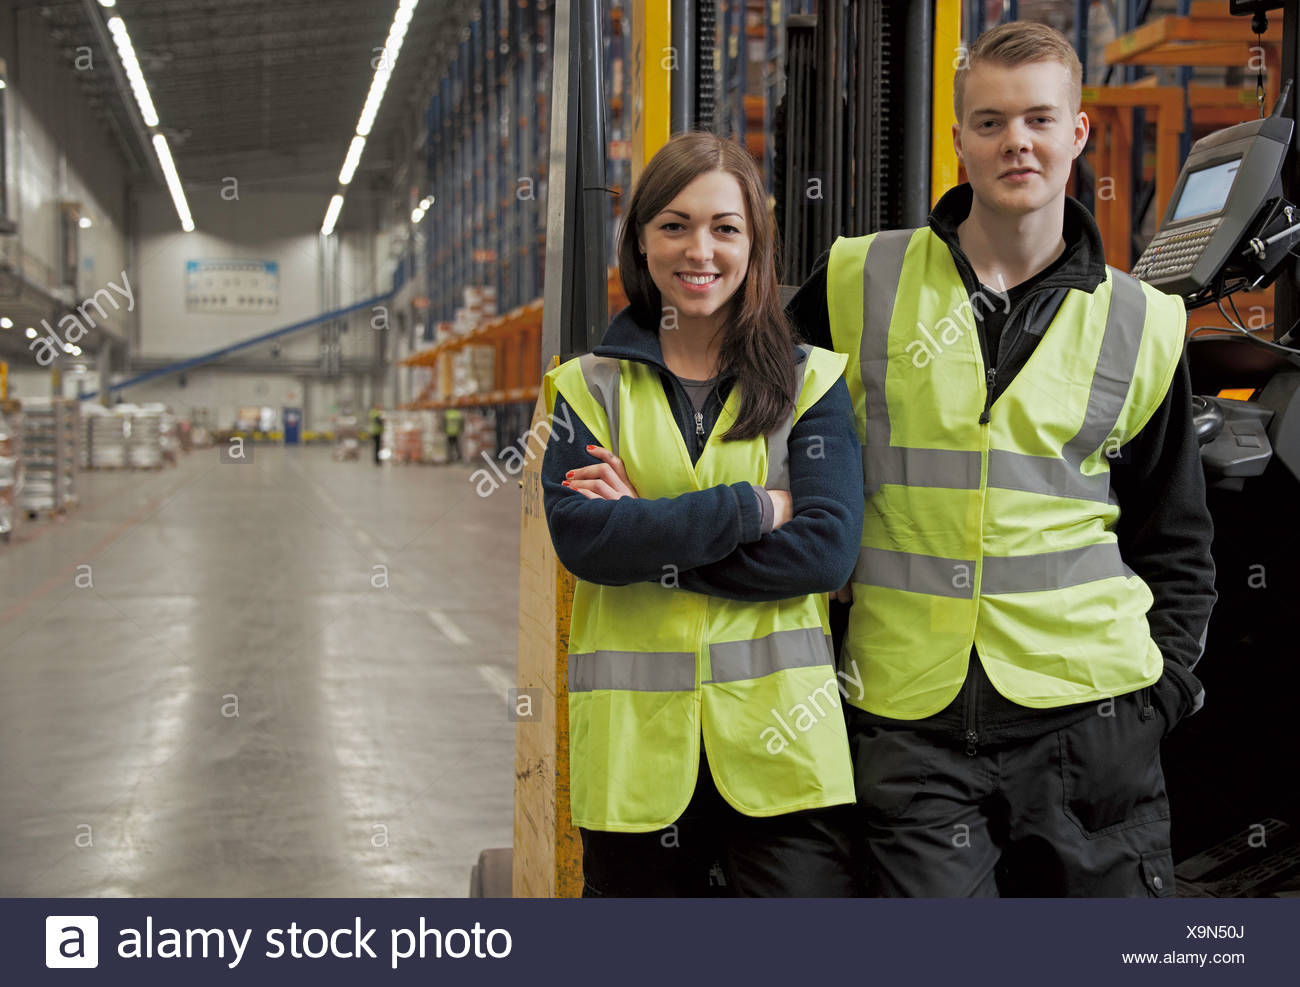 Workers by forklift in warehouse Stock Photo